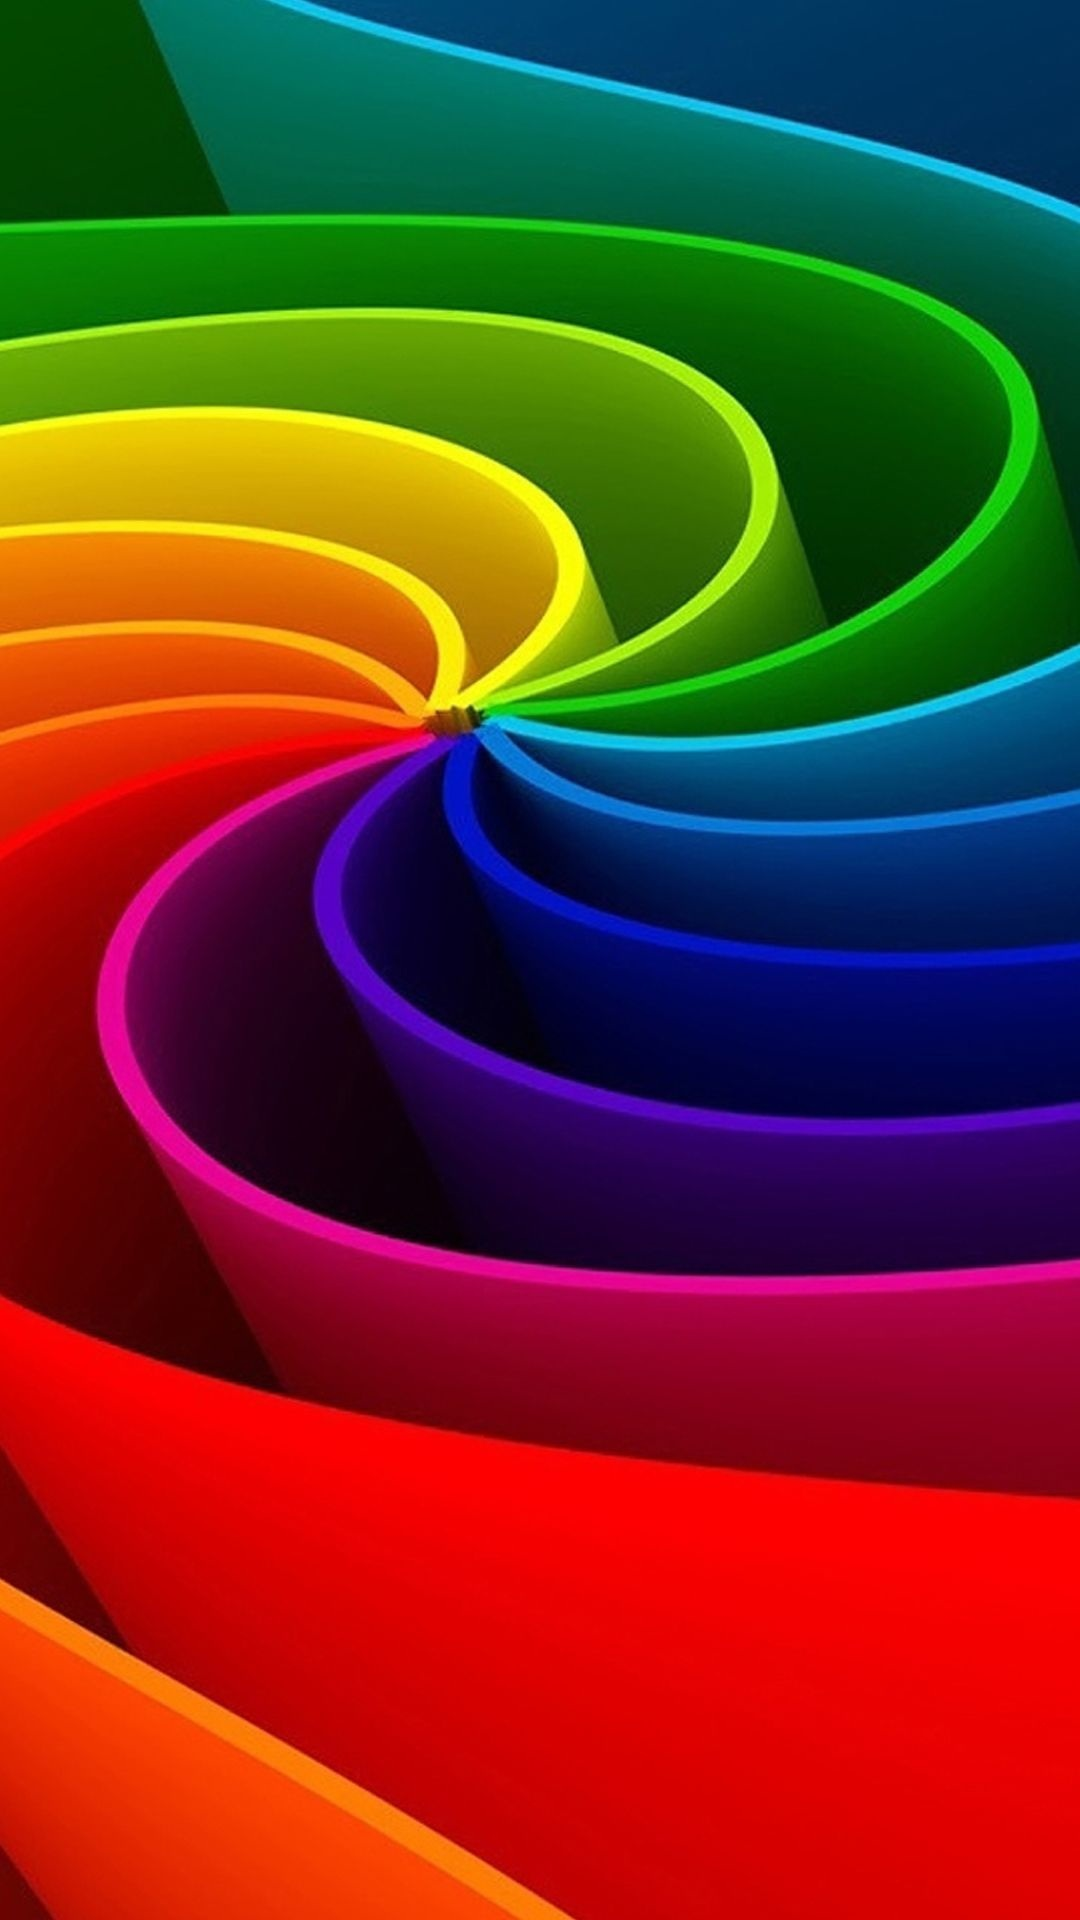 3d Background Wallpapers For Mobile: 60+ Mobile Wallpapers In HD For Free Download